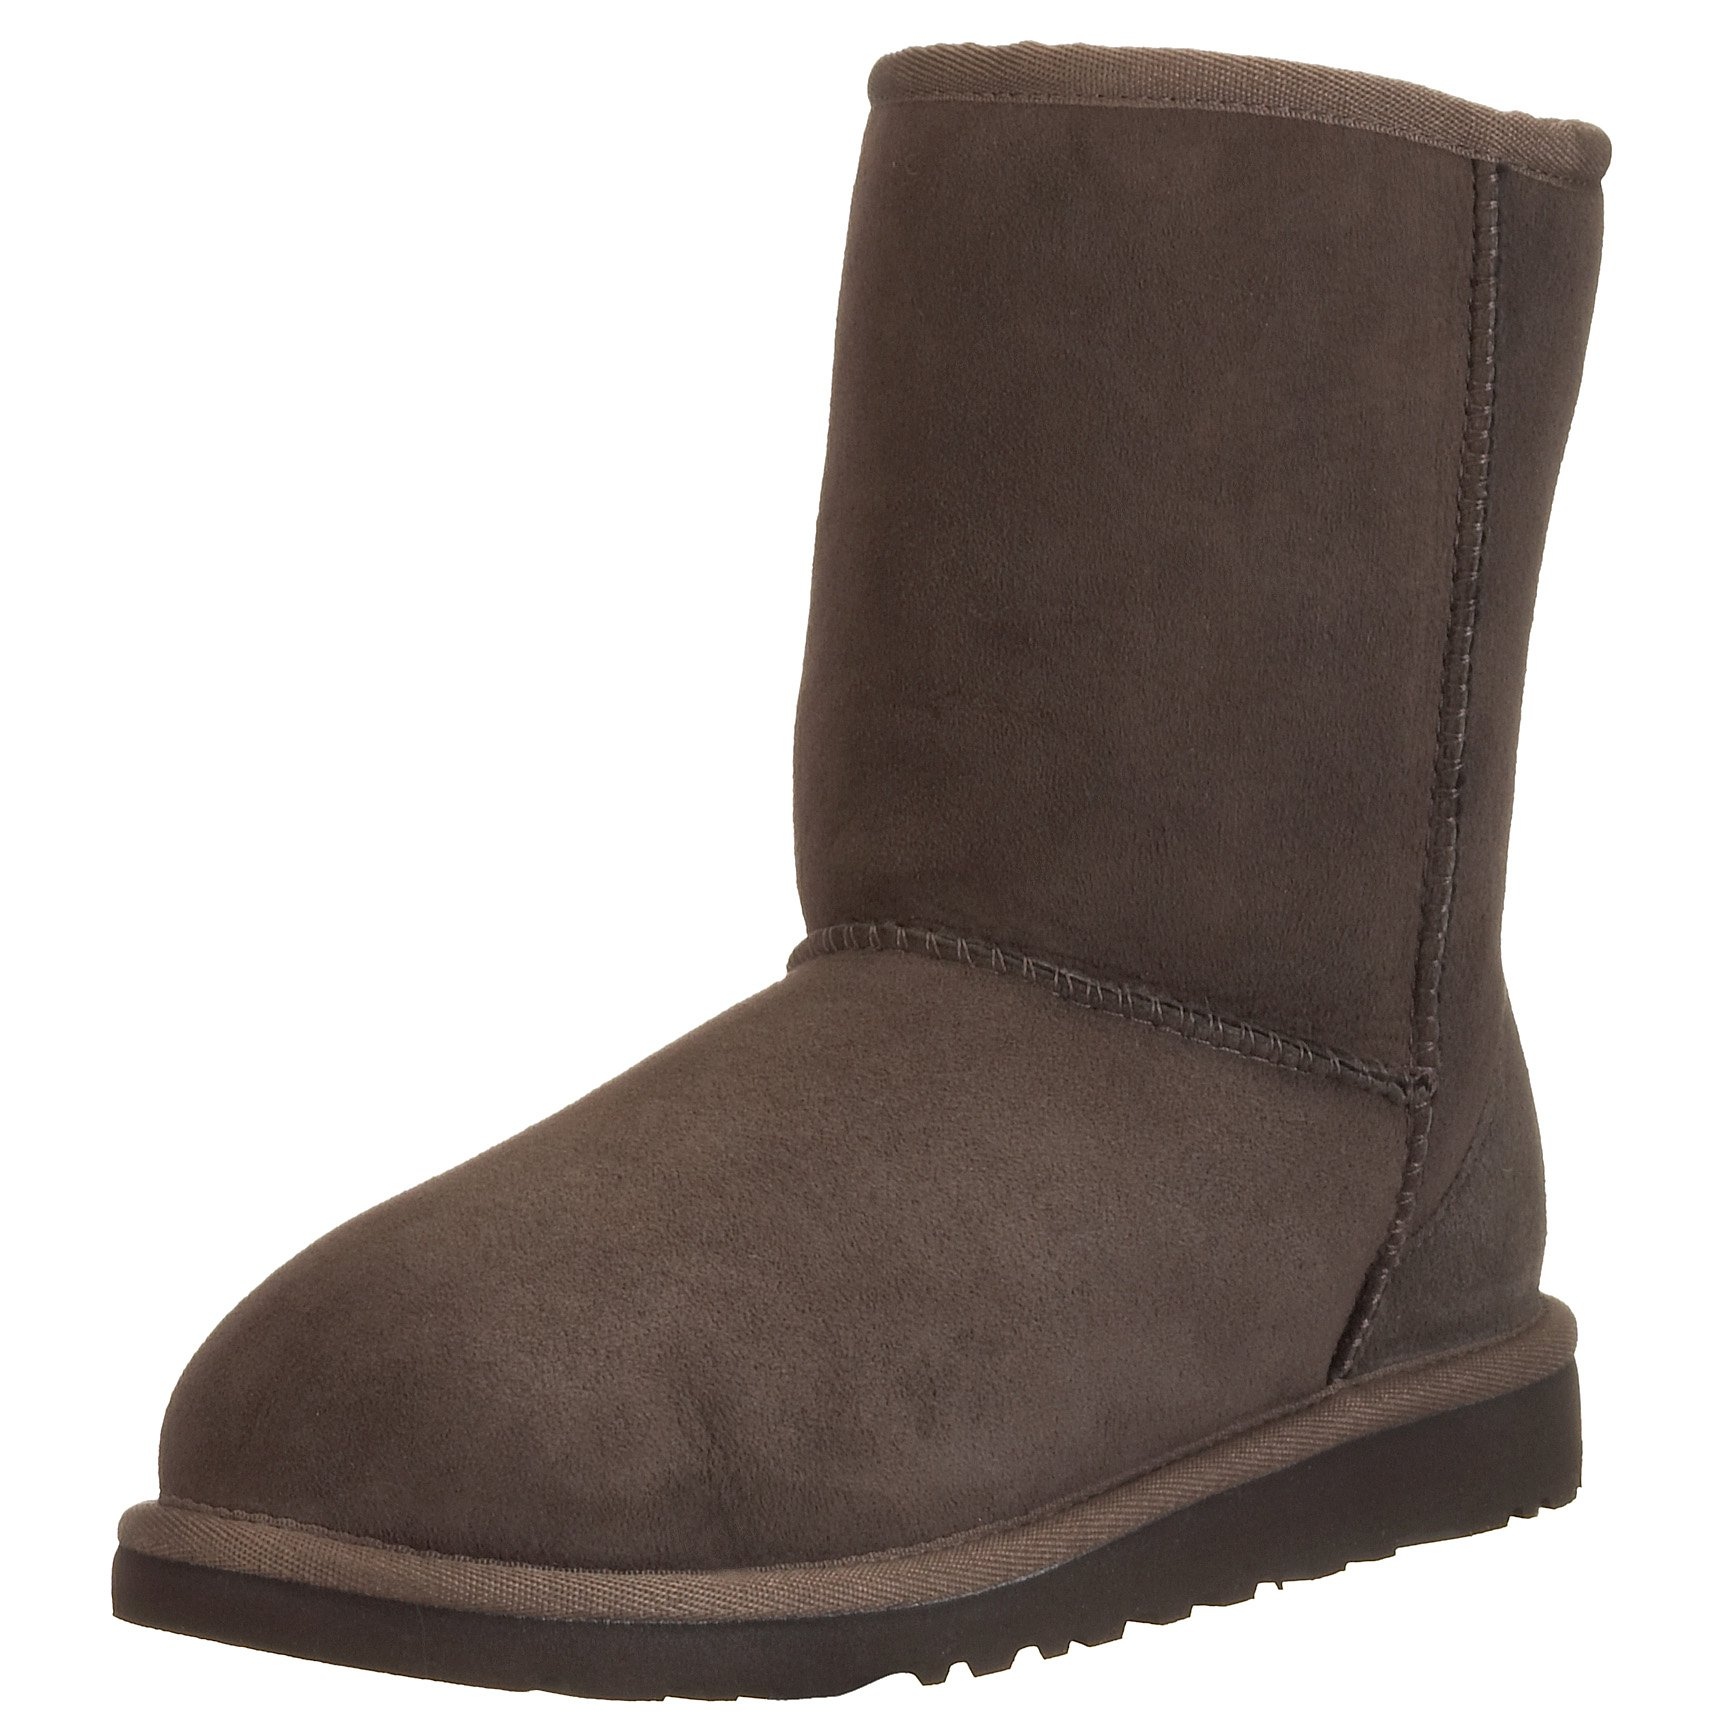 UGG Australia Girls' Classic Short Sheepskin Fashion Boot Chocolate 6 M US by UGG